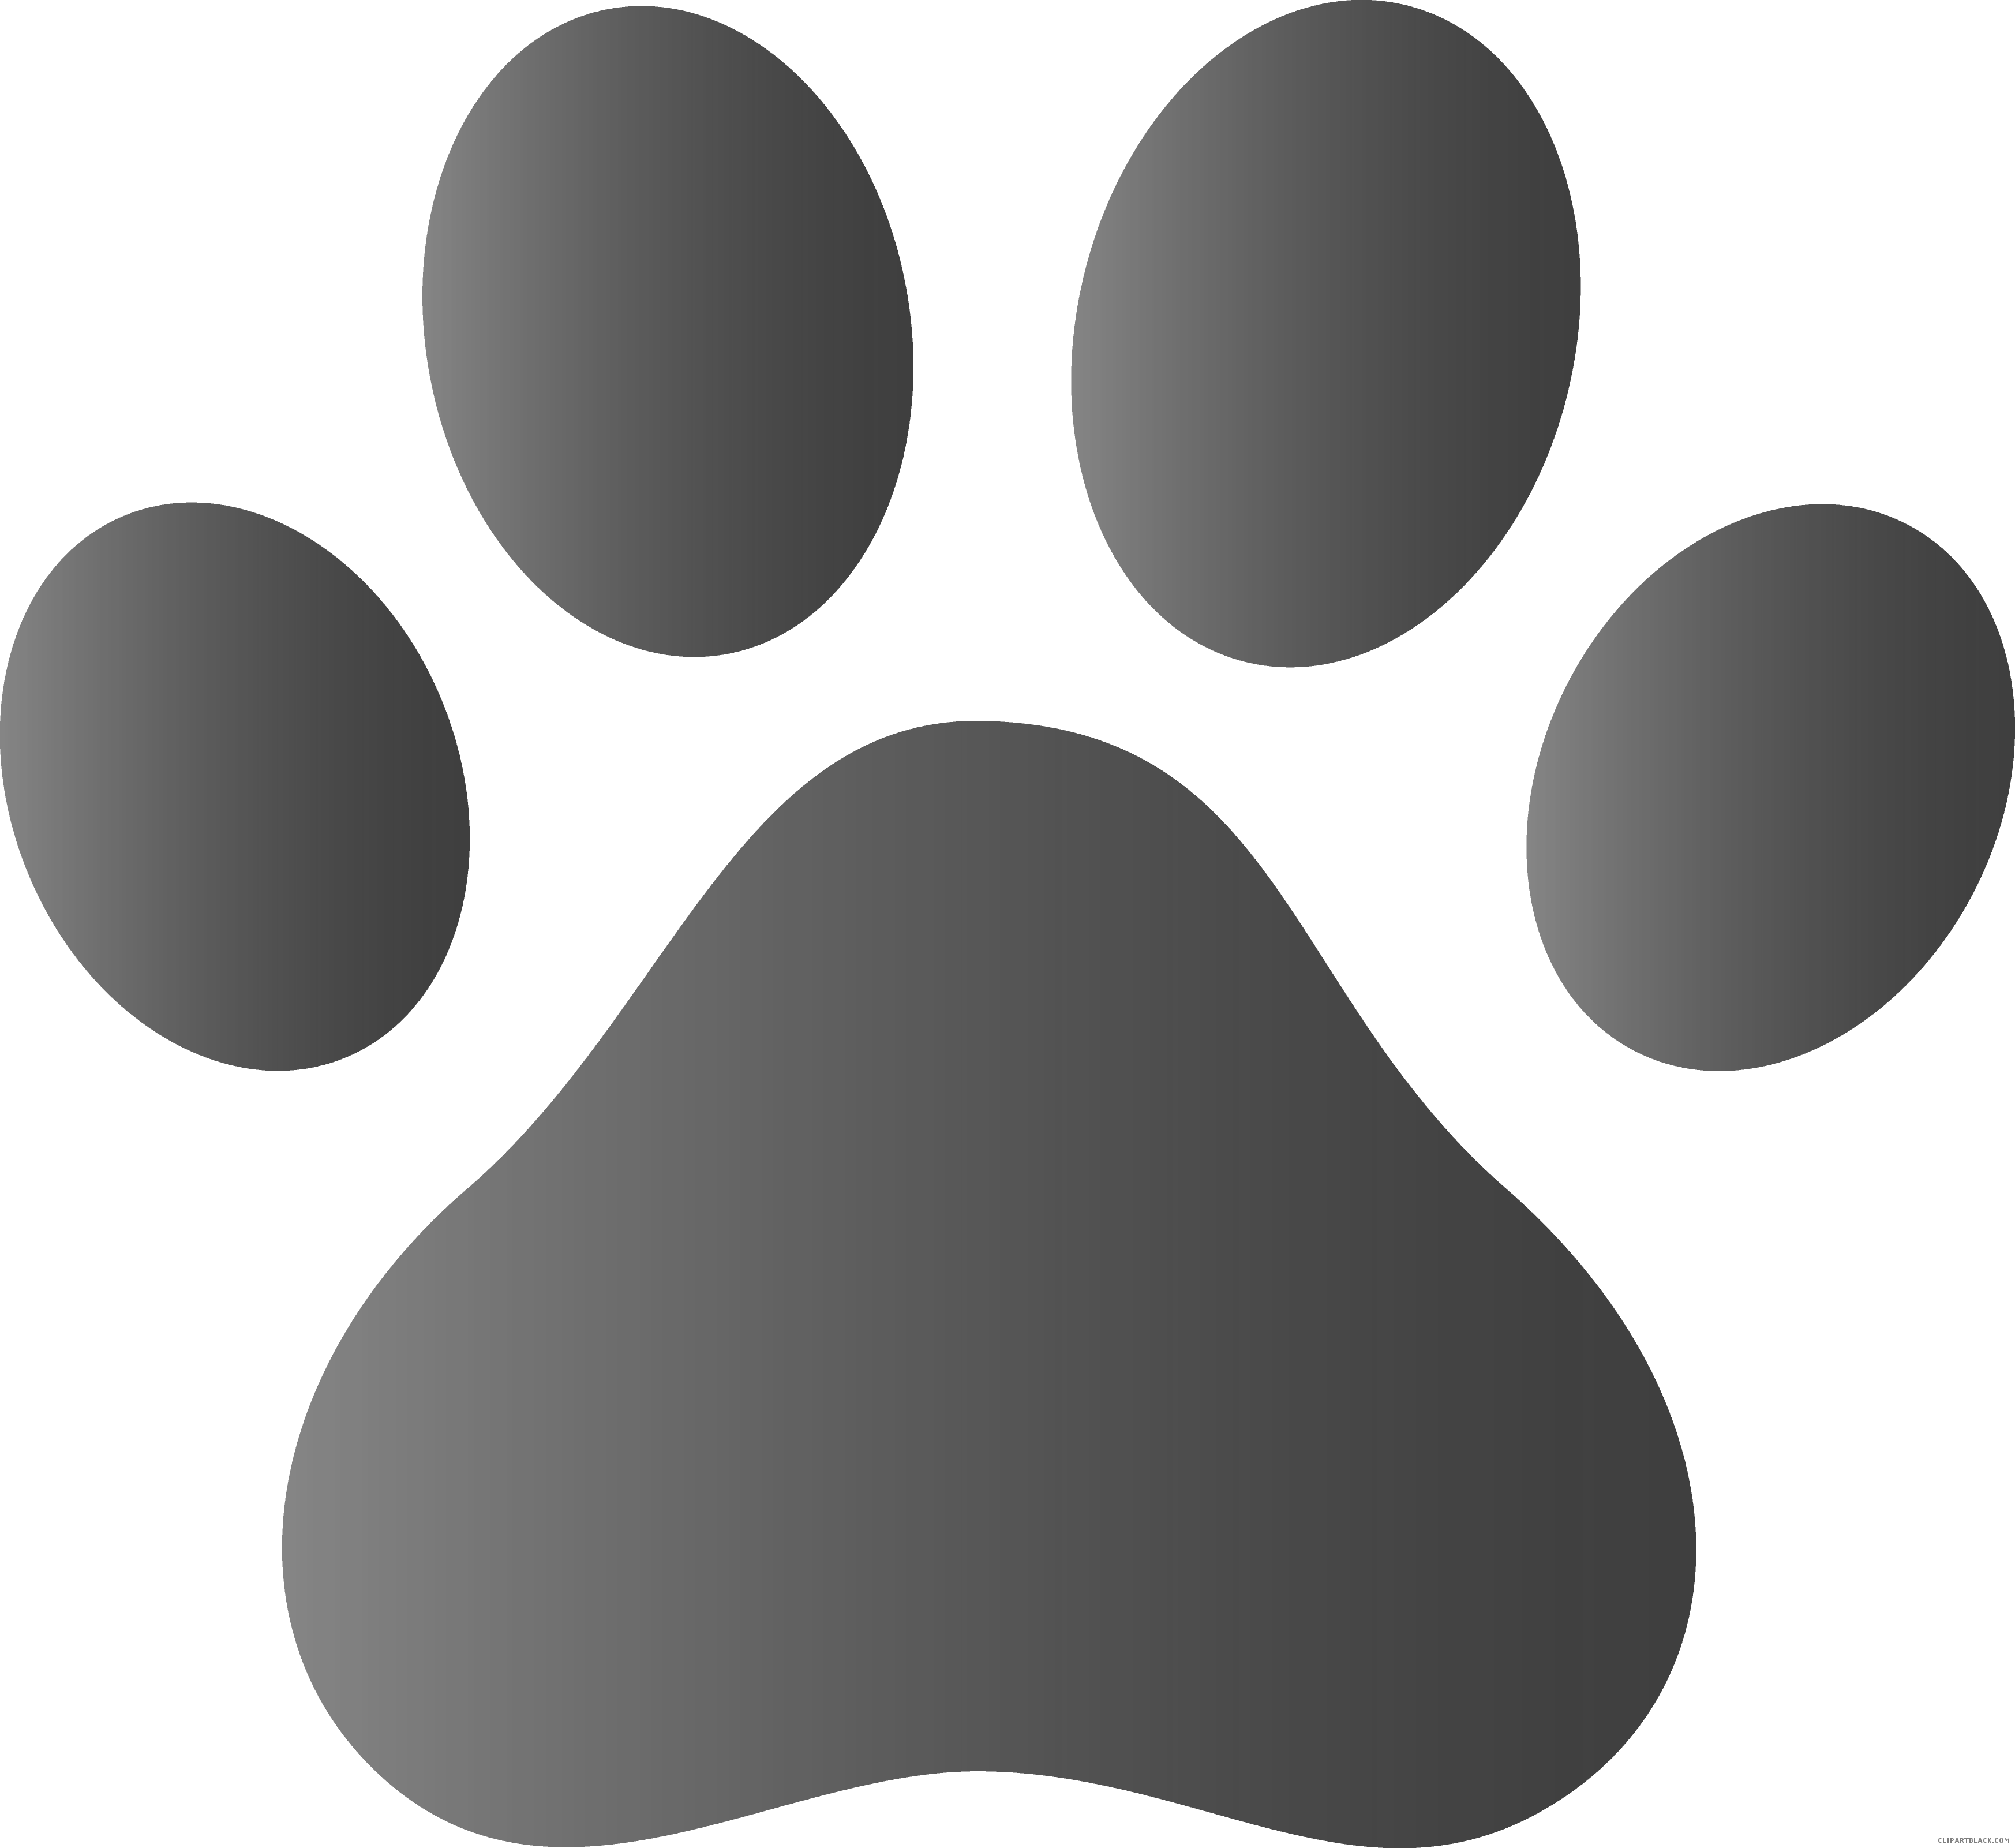 Dog paw clipart black and white svg download Dog Paw Prints Clipart - Page 3 of 3 - ClipartBlack.com svg download